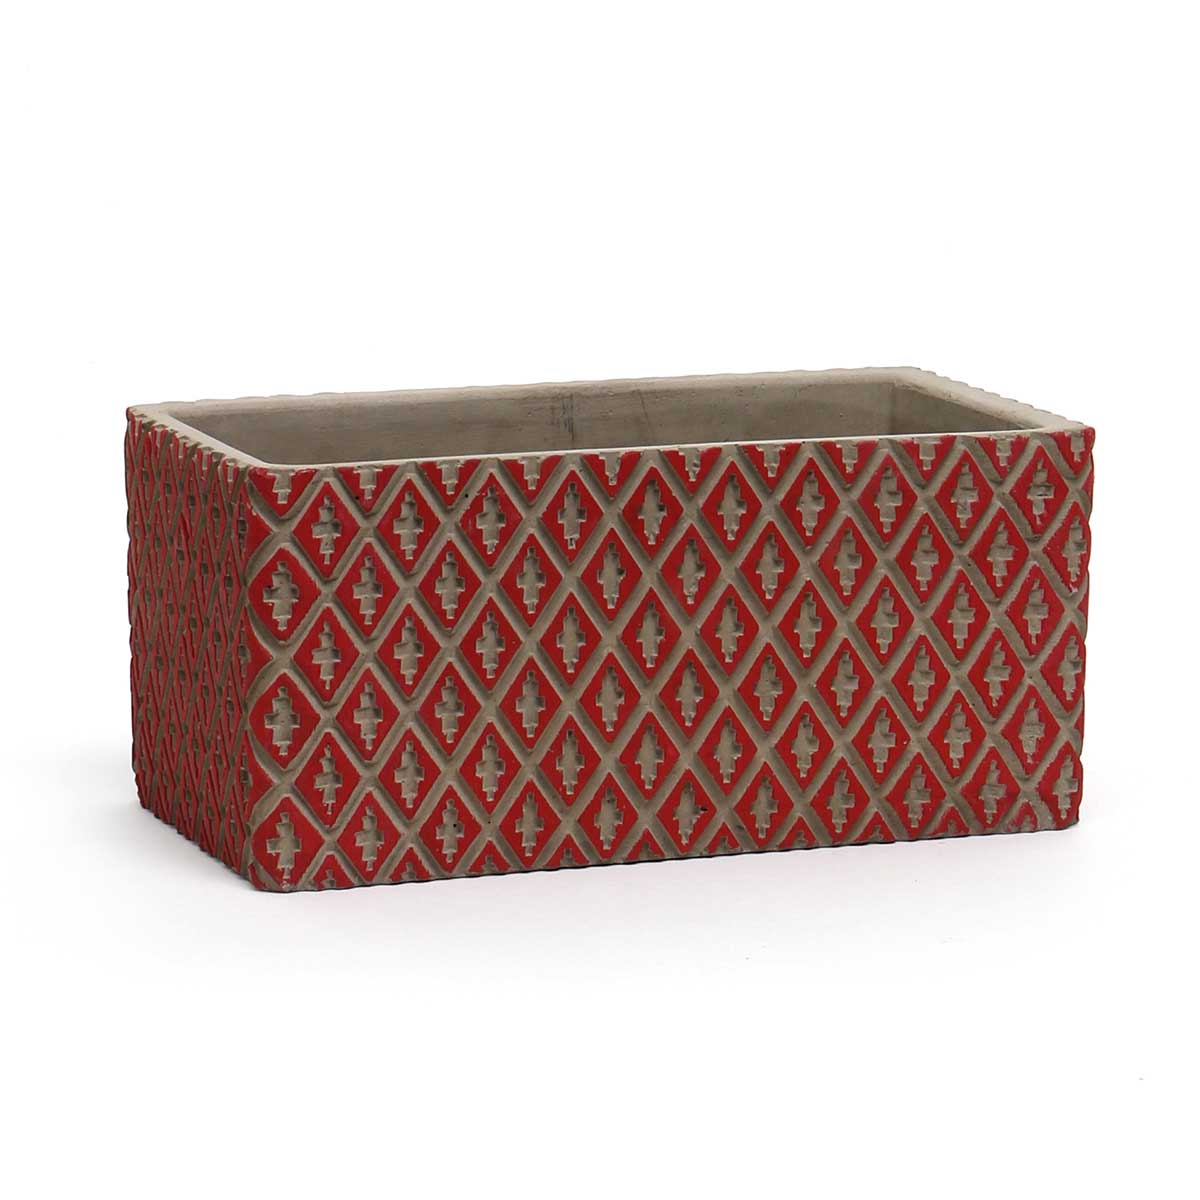 SCANDIA HOLIDAY RECTANGLE RED